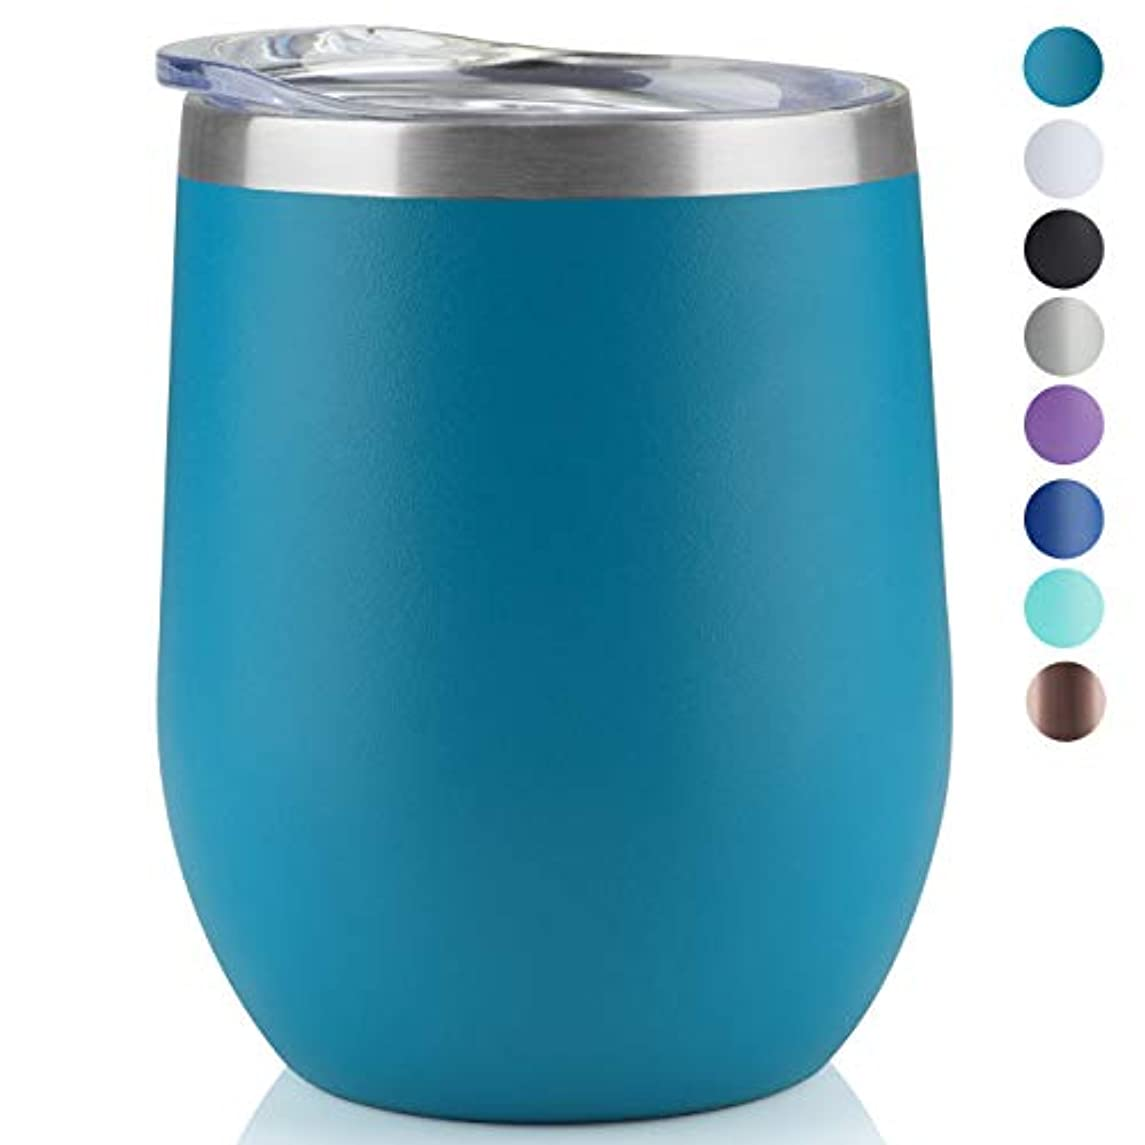 MUCHENG 12oz Insulated Cooling Cups,1-Pack, Wine Tumbler with Lid, Stemless Stainless Steel Insulated Wine Glass Double Wall Durable Coffee Mug, for Champaign, Cocktail, Beer, Office use (Lake Blue)